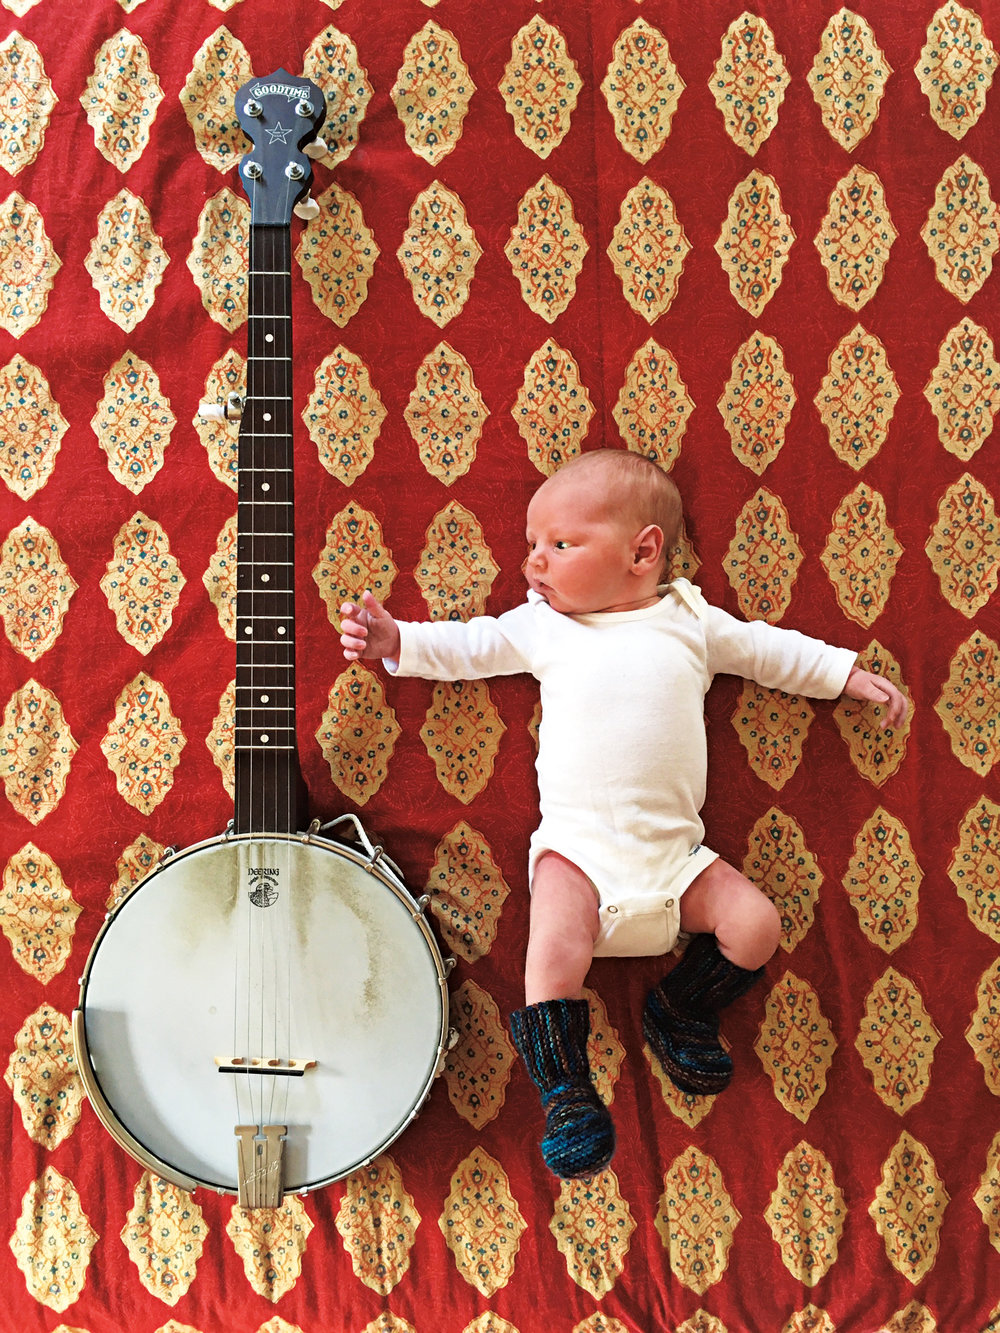 August Brewster Rauch, son of Ned P. Rauch '94, alongside Ned's banjo (for scale).